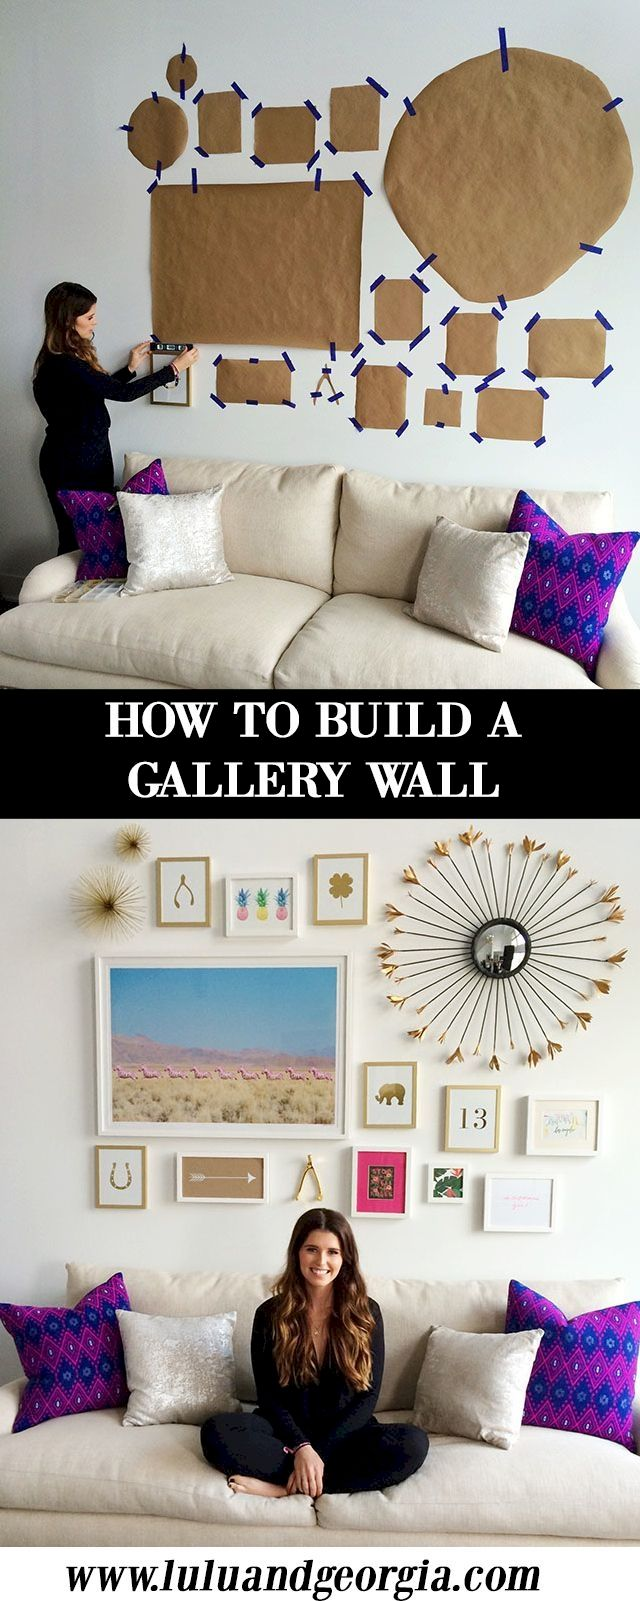 15. Get that gorgeous gallery wall                                                                                                                                                                                 More